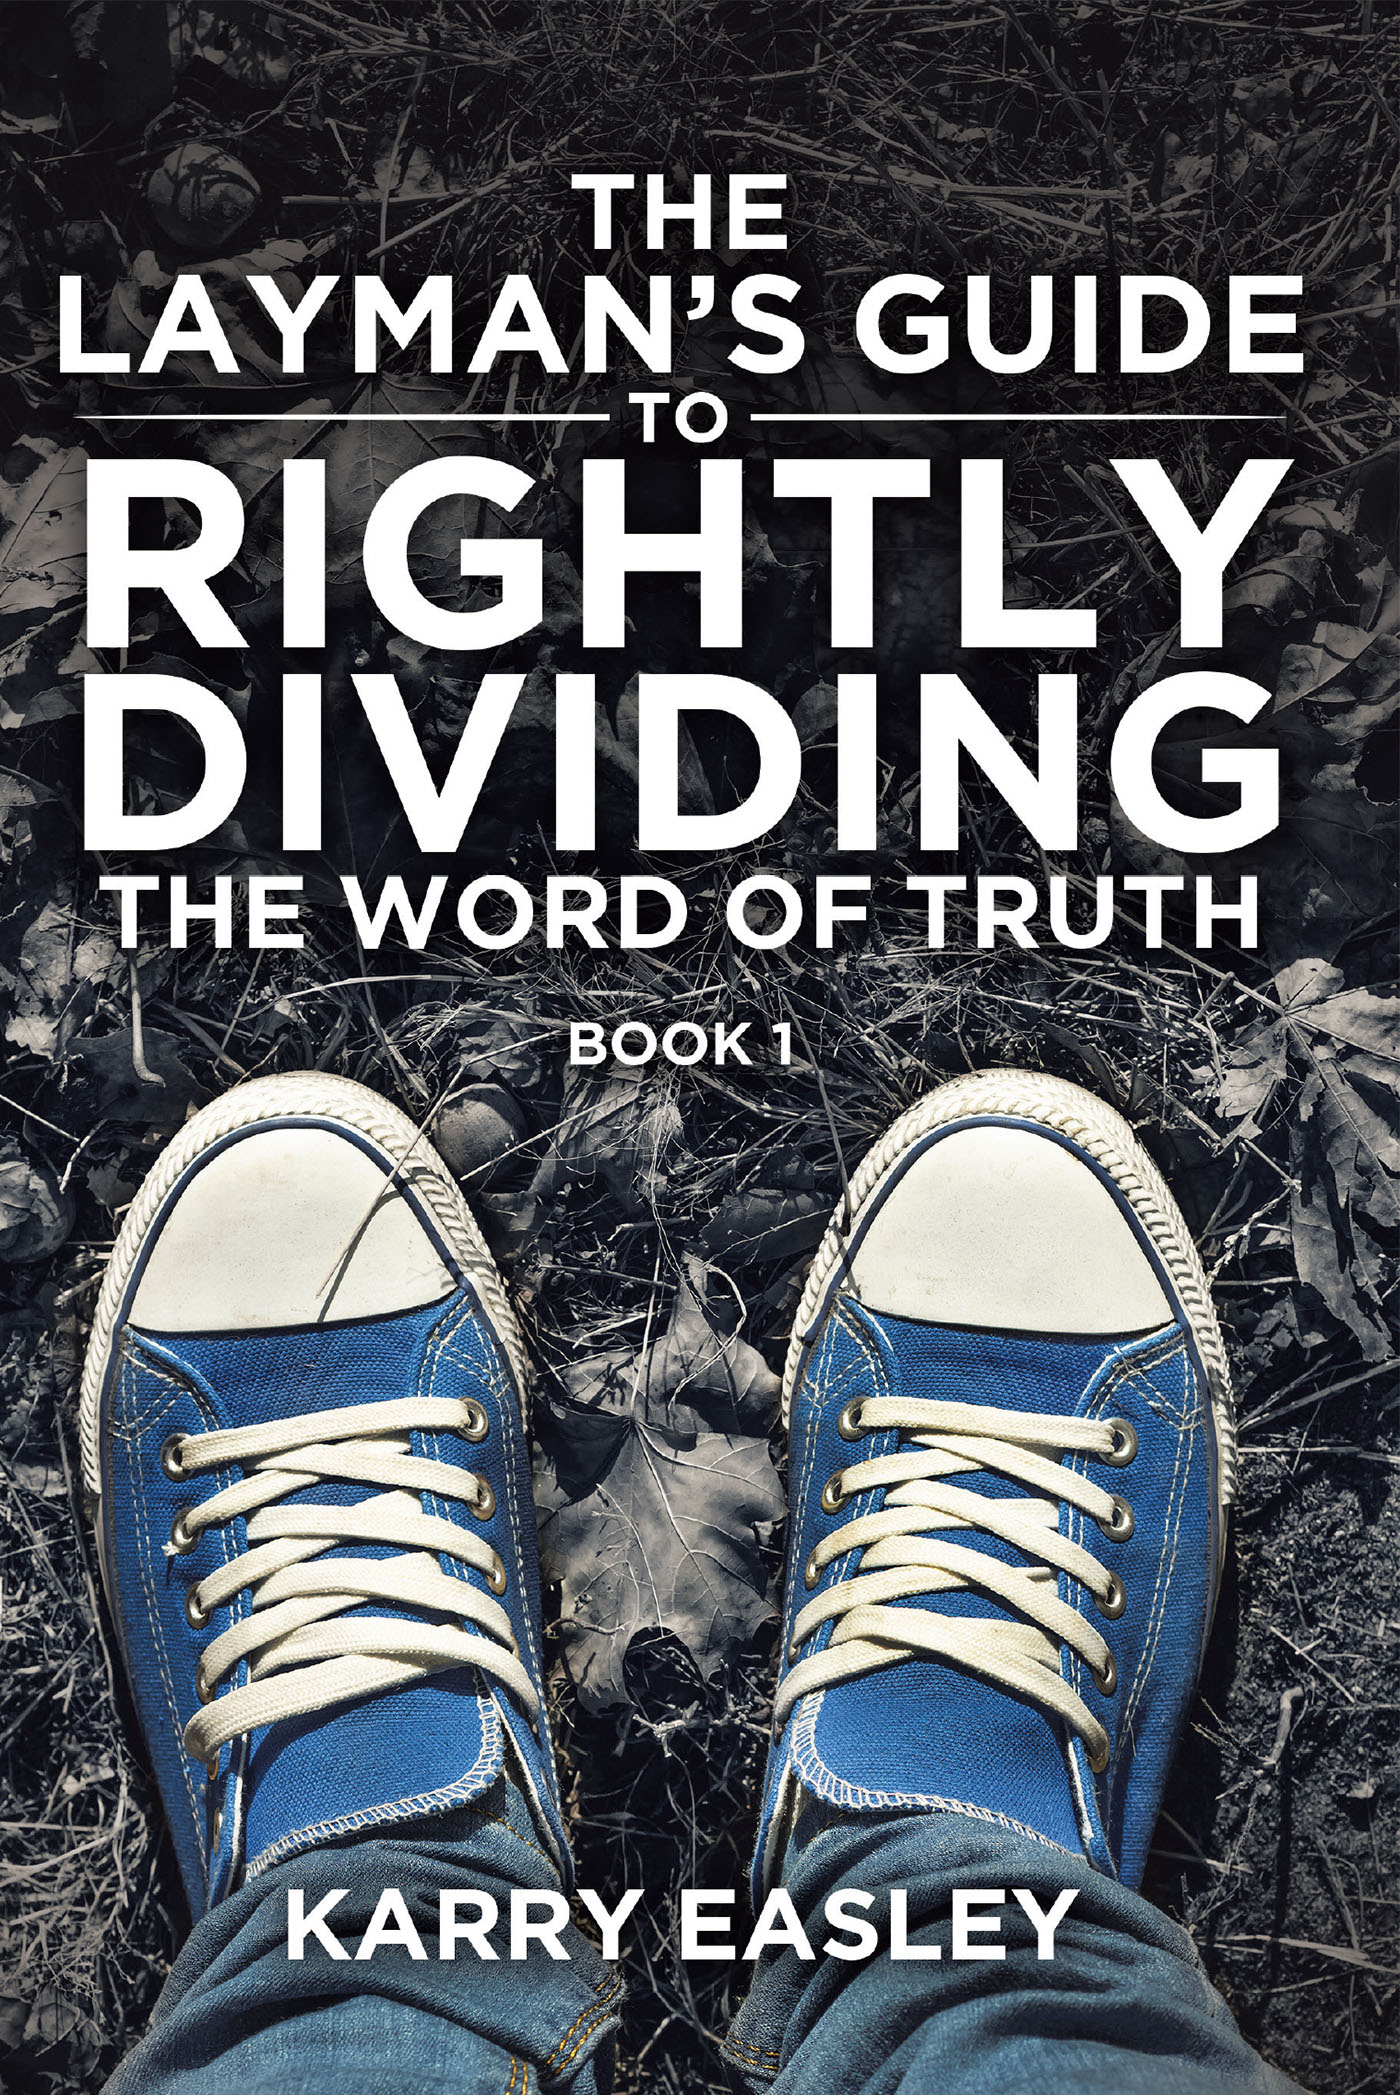 d6ac618a75 The Layman's Guide To Rightly Dividing The Word of Truth